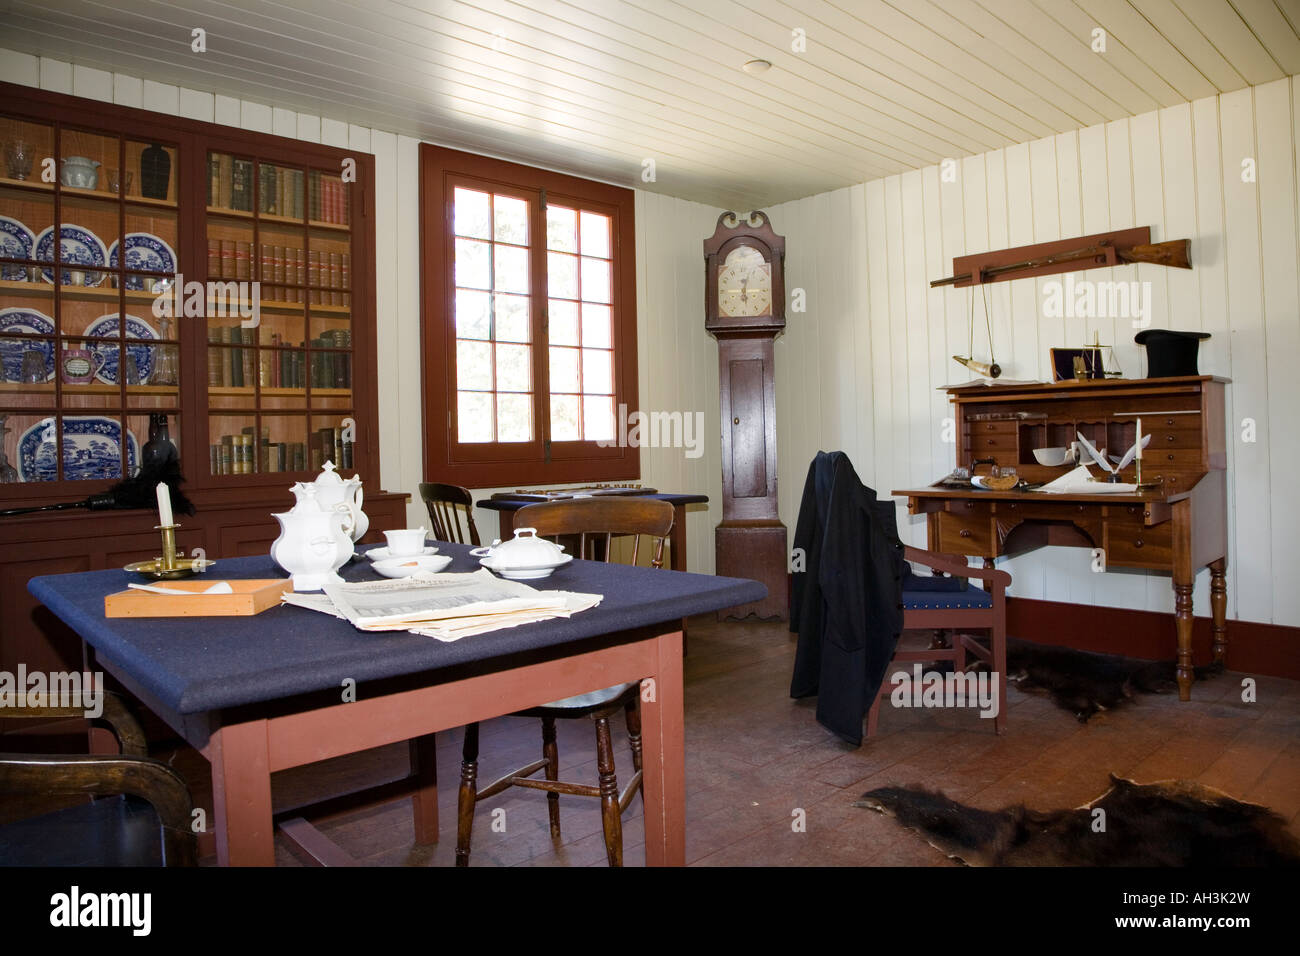 Inside The Big House Fort Langley National Historic Site British Columbia Canada